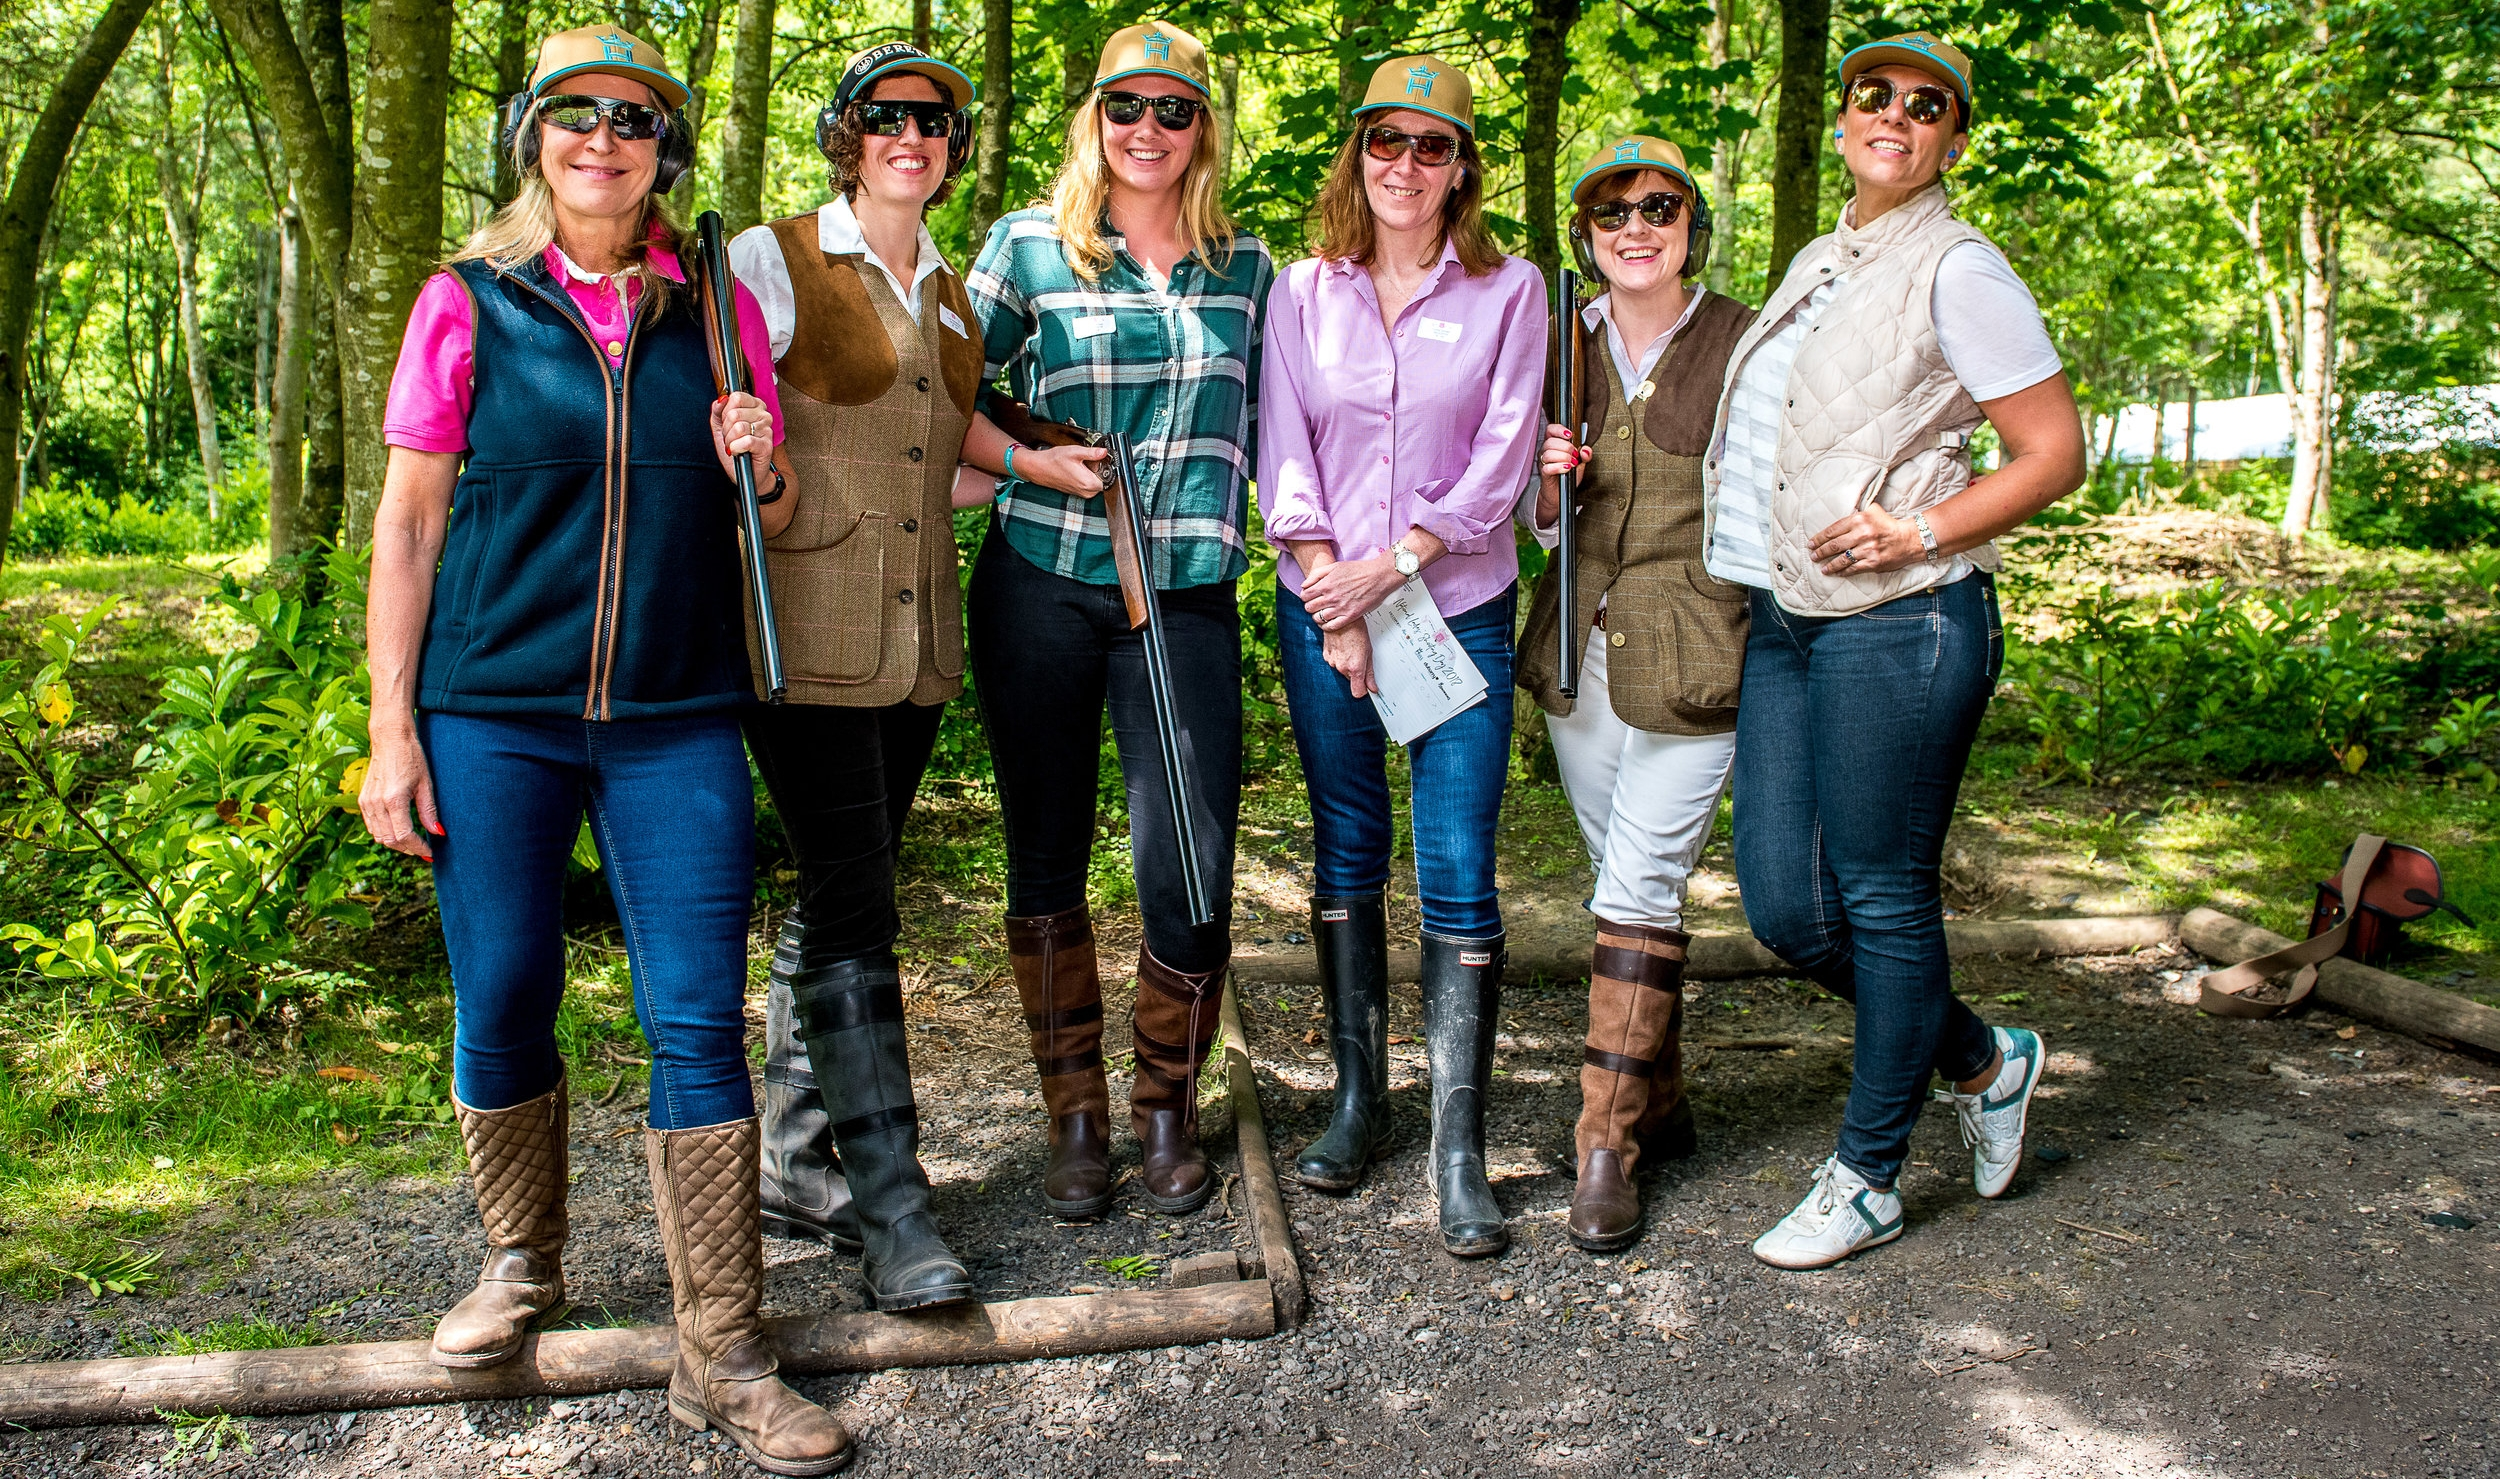 LadiesShooting